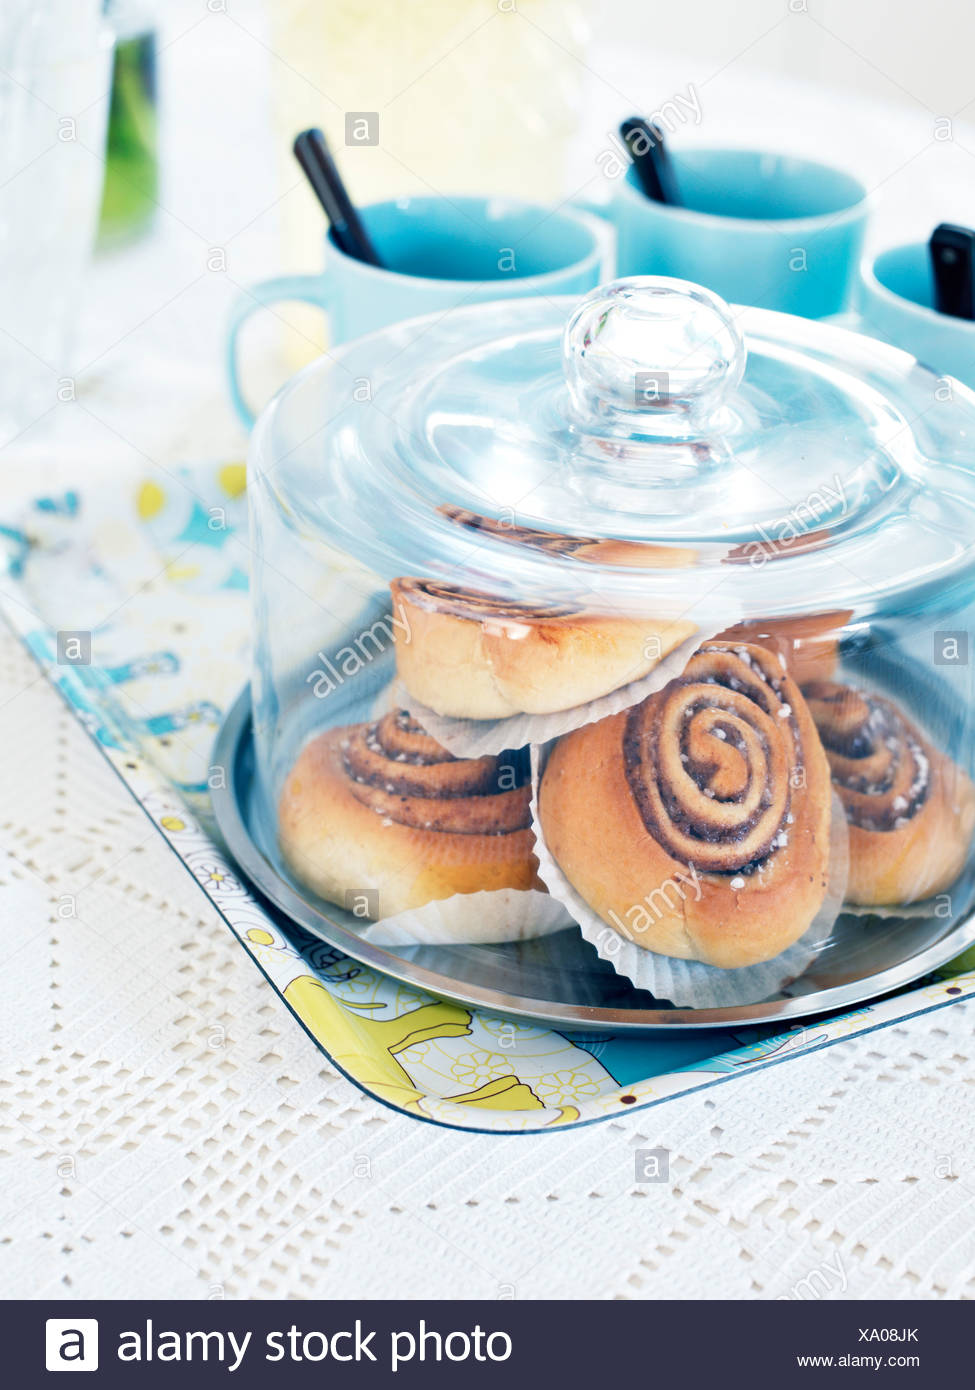 Buns on a laid table, Sweden. - Stock Image